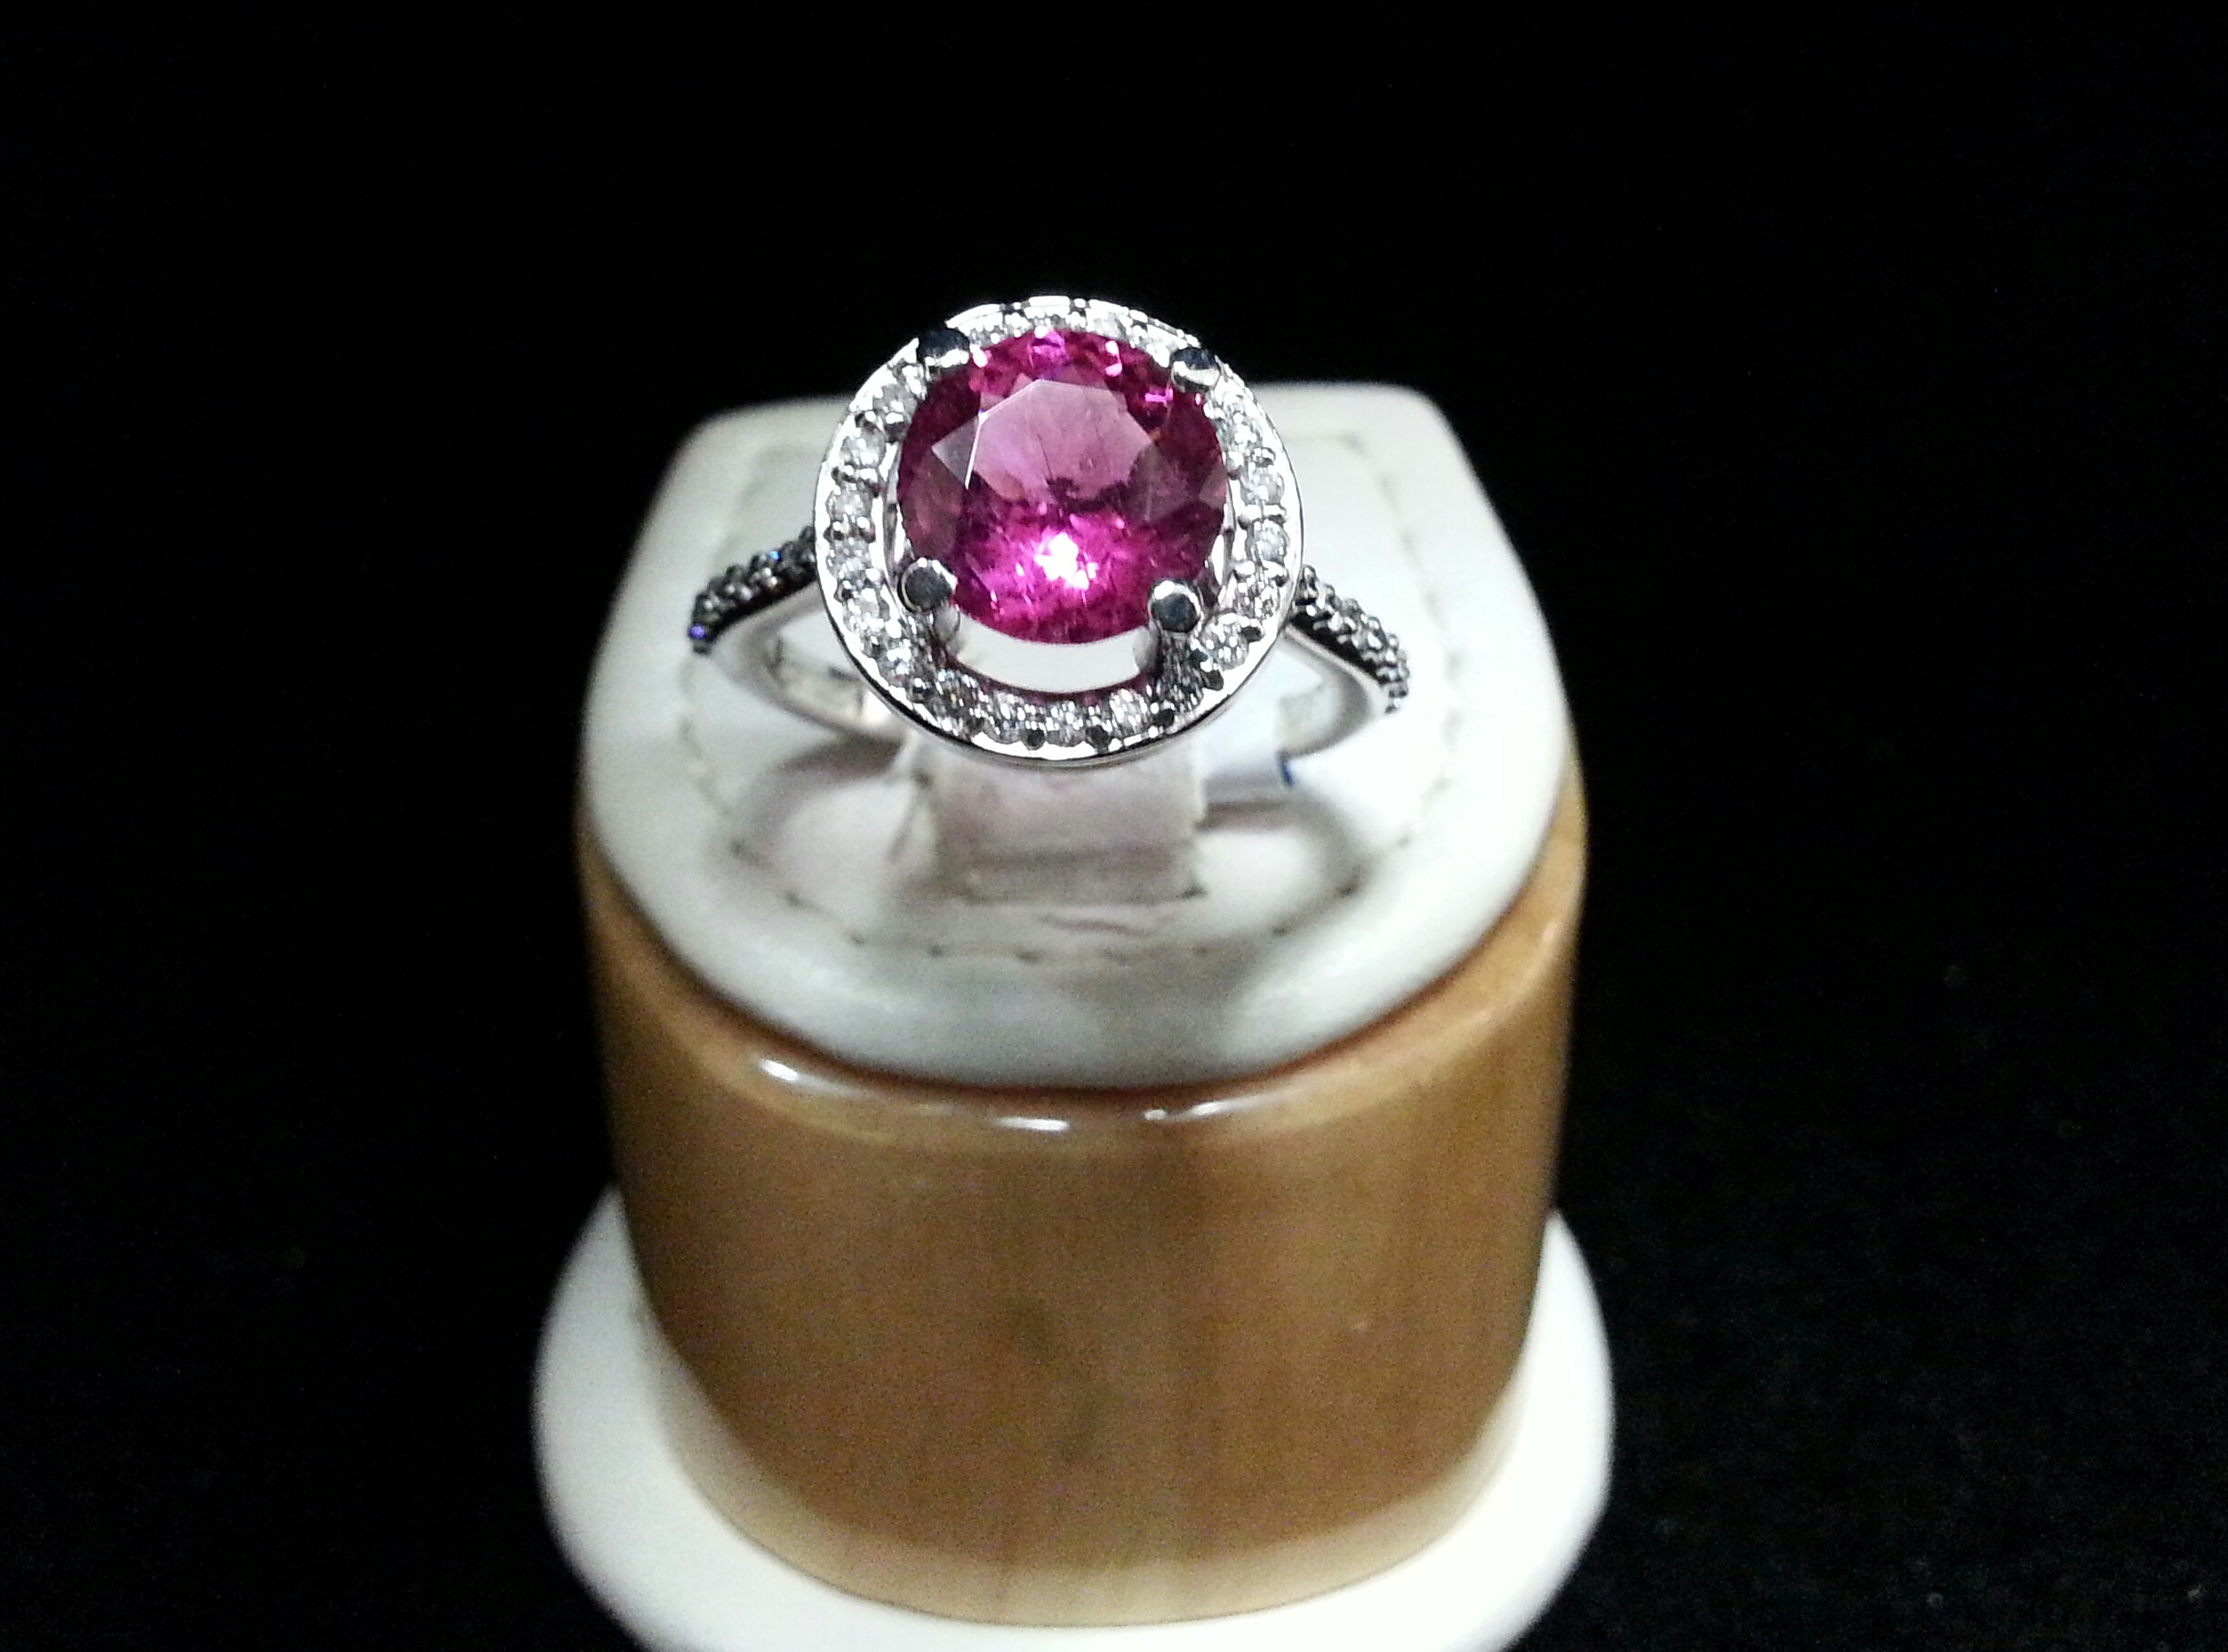 Diamond Halo Style 14k White Gold Mounting with Round Pink Tourmaline in Center. Tourmaline is 1.58ct with 0.26ctw of Diamonds.